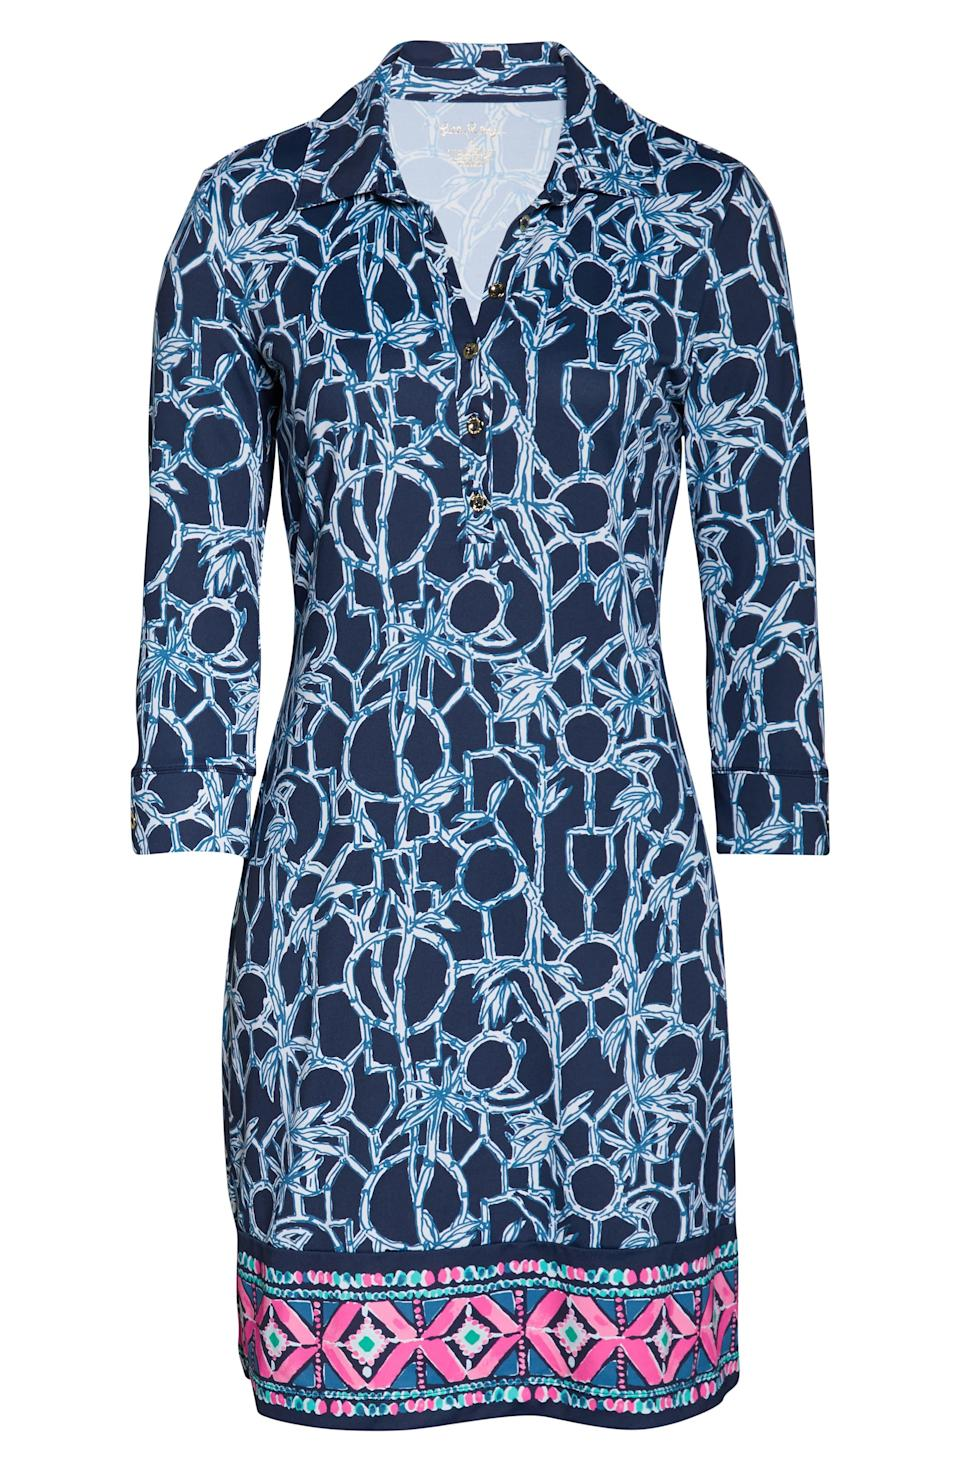 """<p><strong>LILLY PULITZER</strong></p><p>nordstrom.com</p><p><strong>$148.00</strong></p><p><a href=""""https://go.redirectingat.com?id=74968X1596630&url=https%3A%2F%2Fshop.nordstrom.com%2Fs%2Flilly-pulitzer-ansley-upf-50-polo-dress%2F5331650&sref=http%3A%2F%2Fwww.townandcountrymag.com%2Fstyle%2Ffashion-trends%2Fg26522706%2Fbest-dresses-for-older-women%2F"""" rel=""""nofollow noopener"""" target=""""_blank"""" data-ylk=""""slk:Shop Now"""" class=""""link rapid-noclick-resp"""">Shop Now</a></p><p>You can never go wrong with a dramatic pop of print like this Lilly Pulitzer shift dress. </p>"""